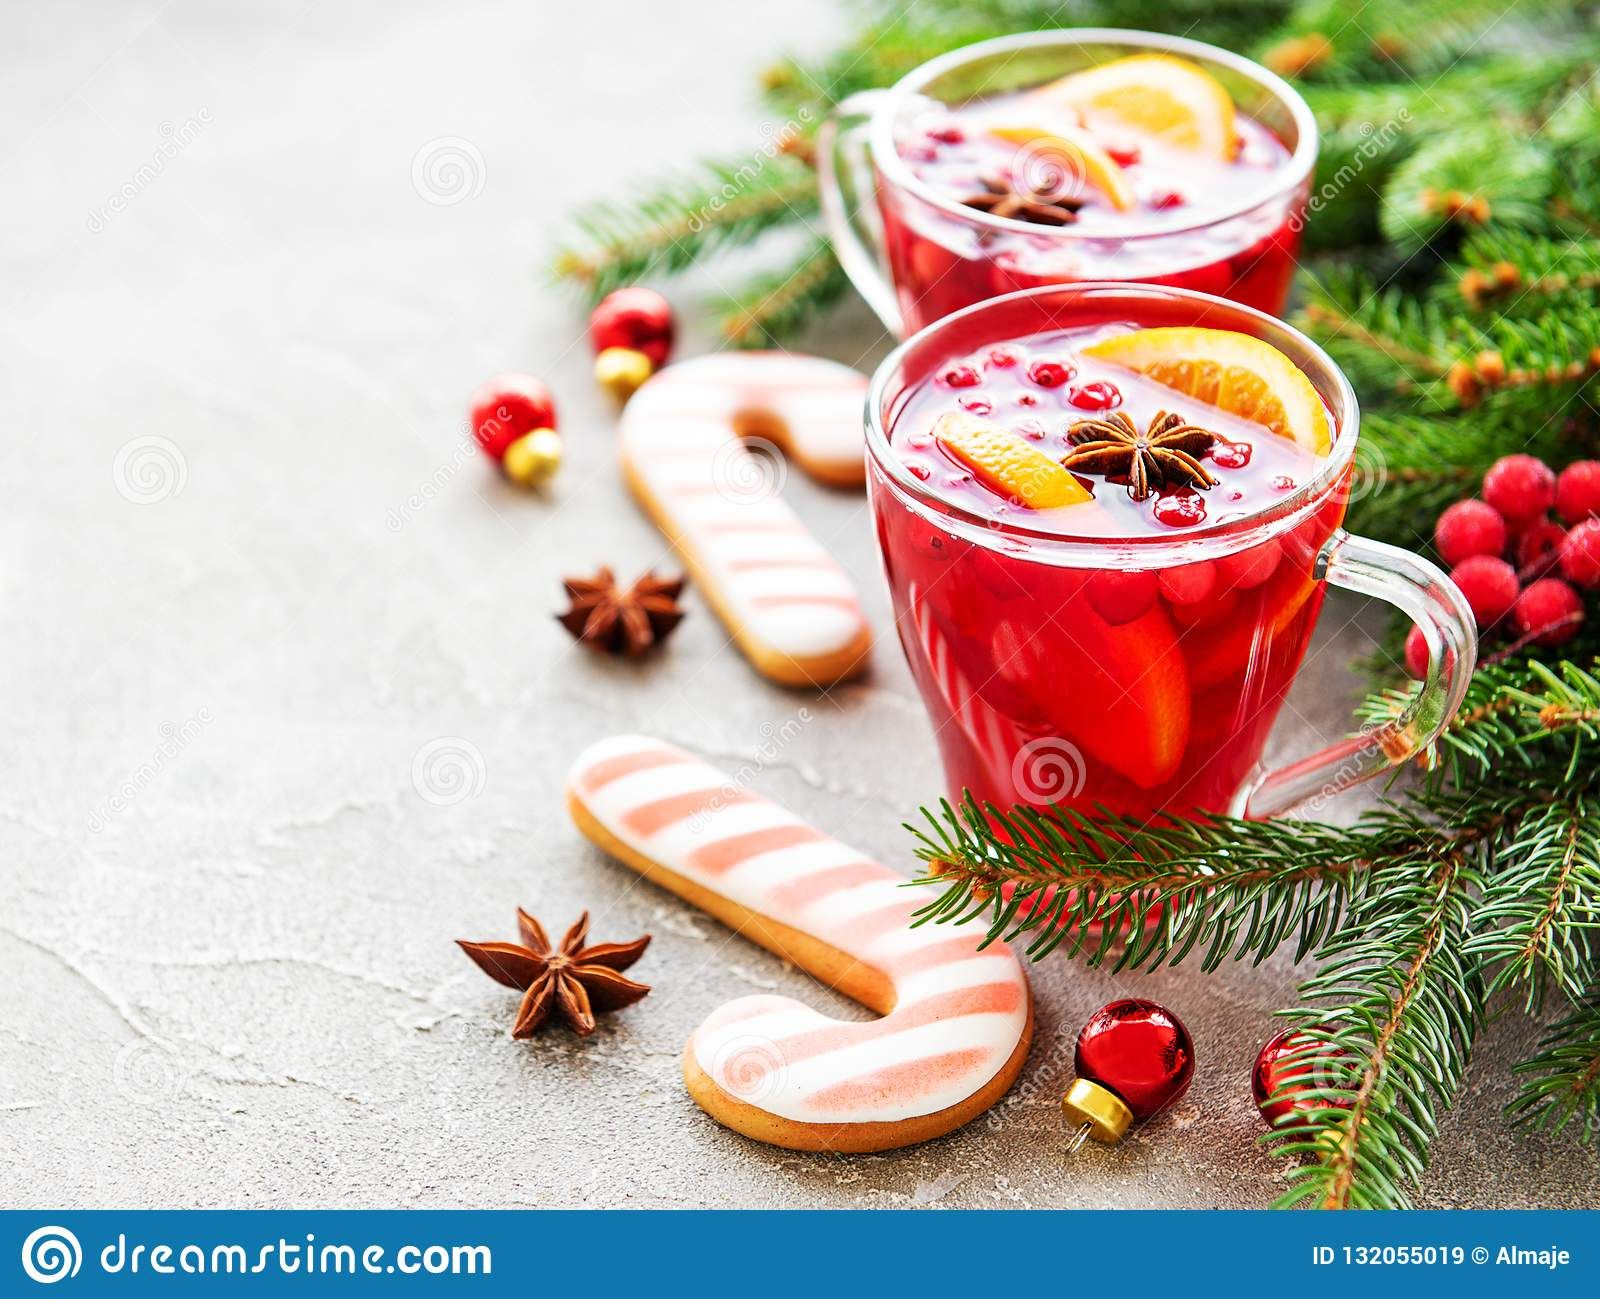 Mulled Wine With Oranges And Spices Christmas Winter Mulledwine Gluhwein With Images Mulled Wine Mulled Mulled Wine Glasses